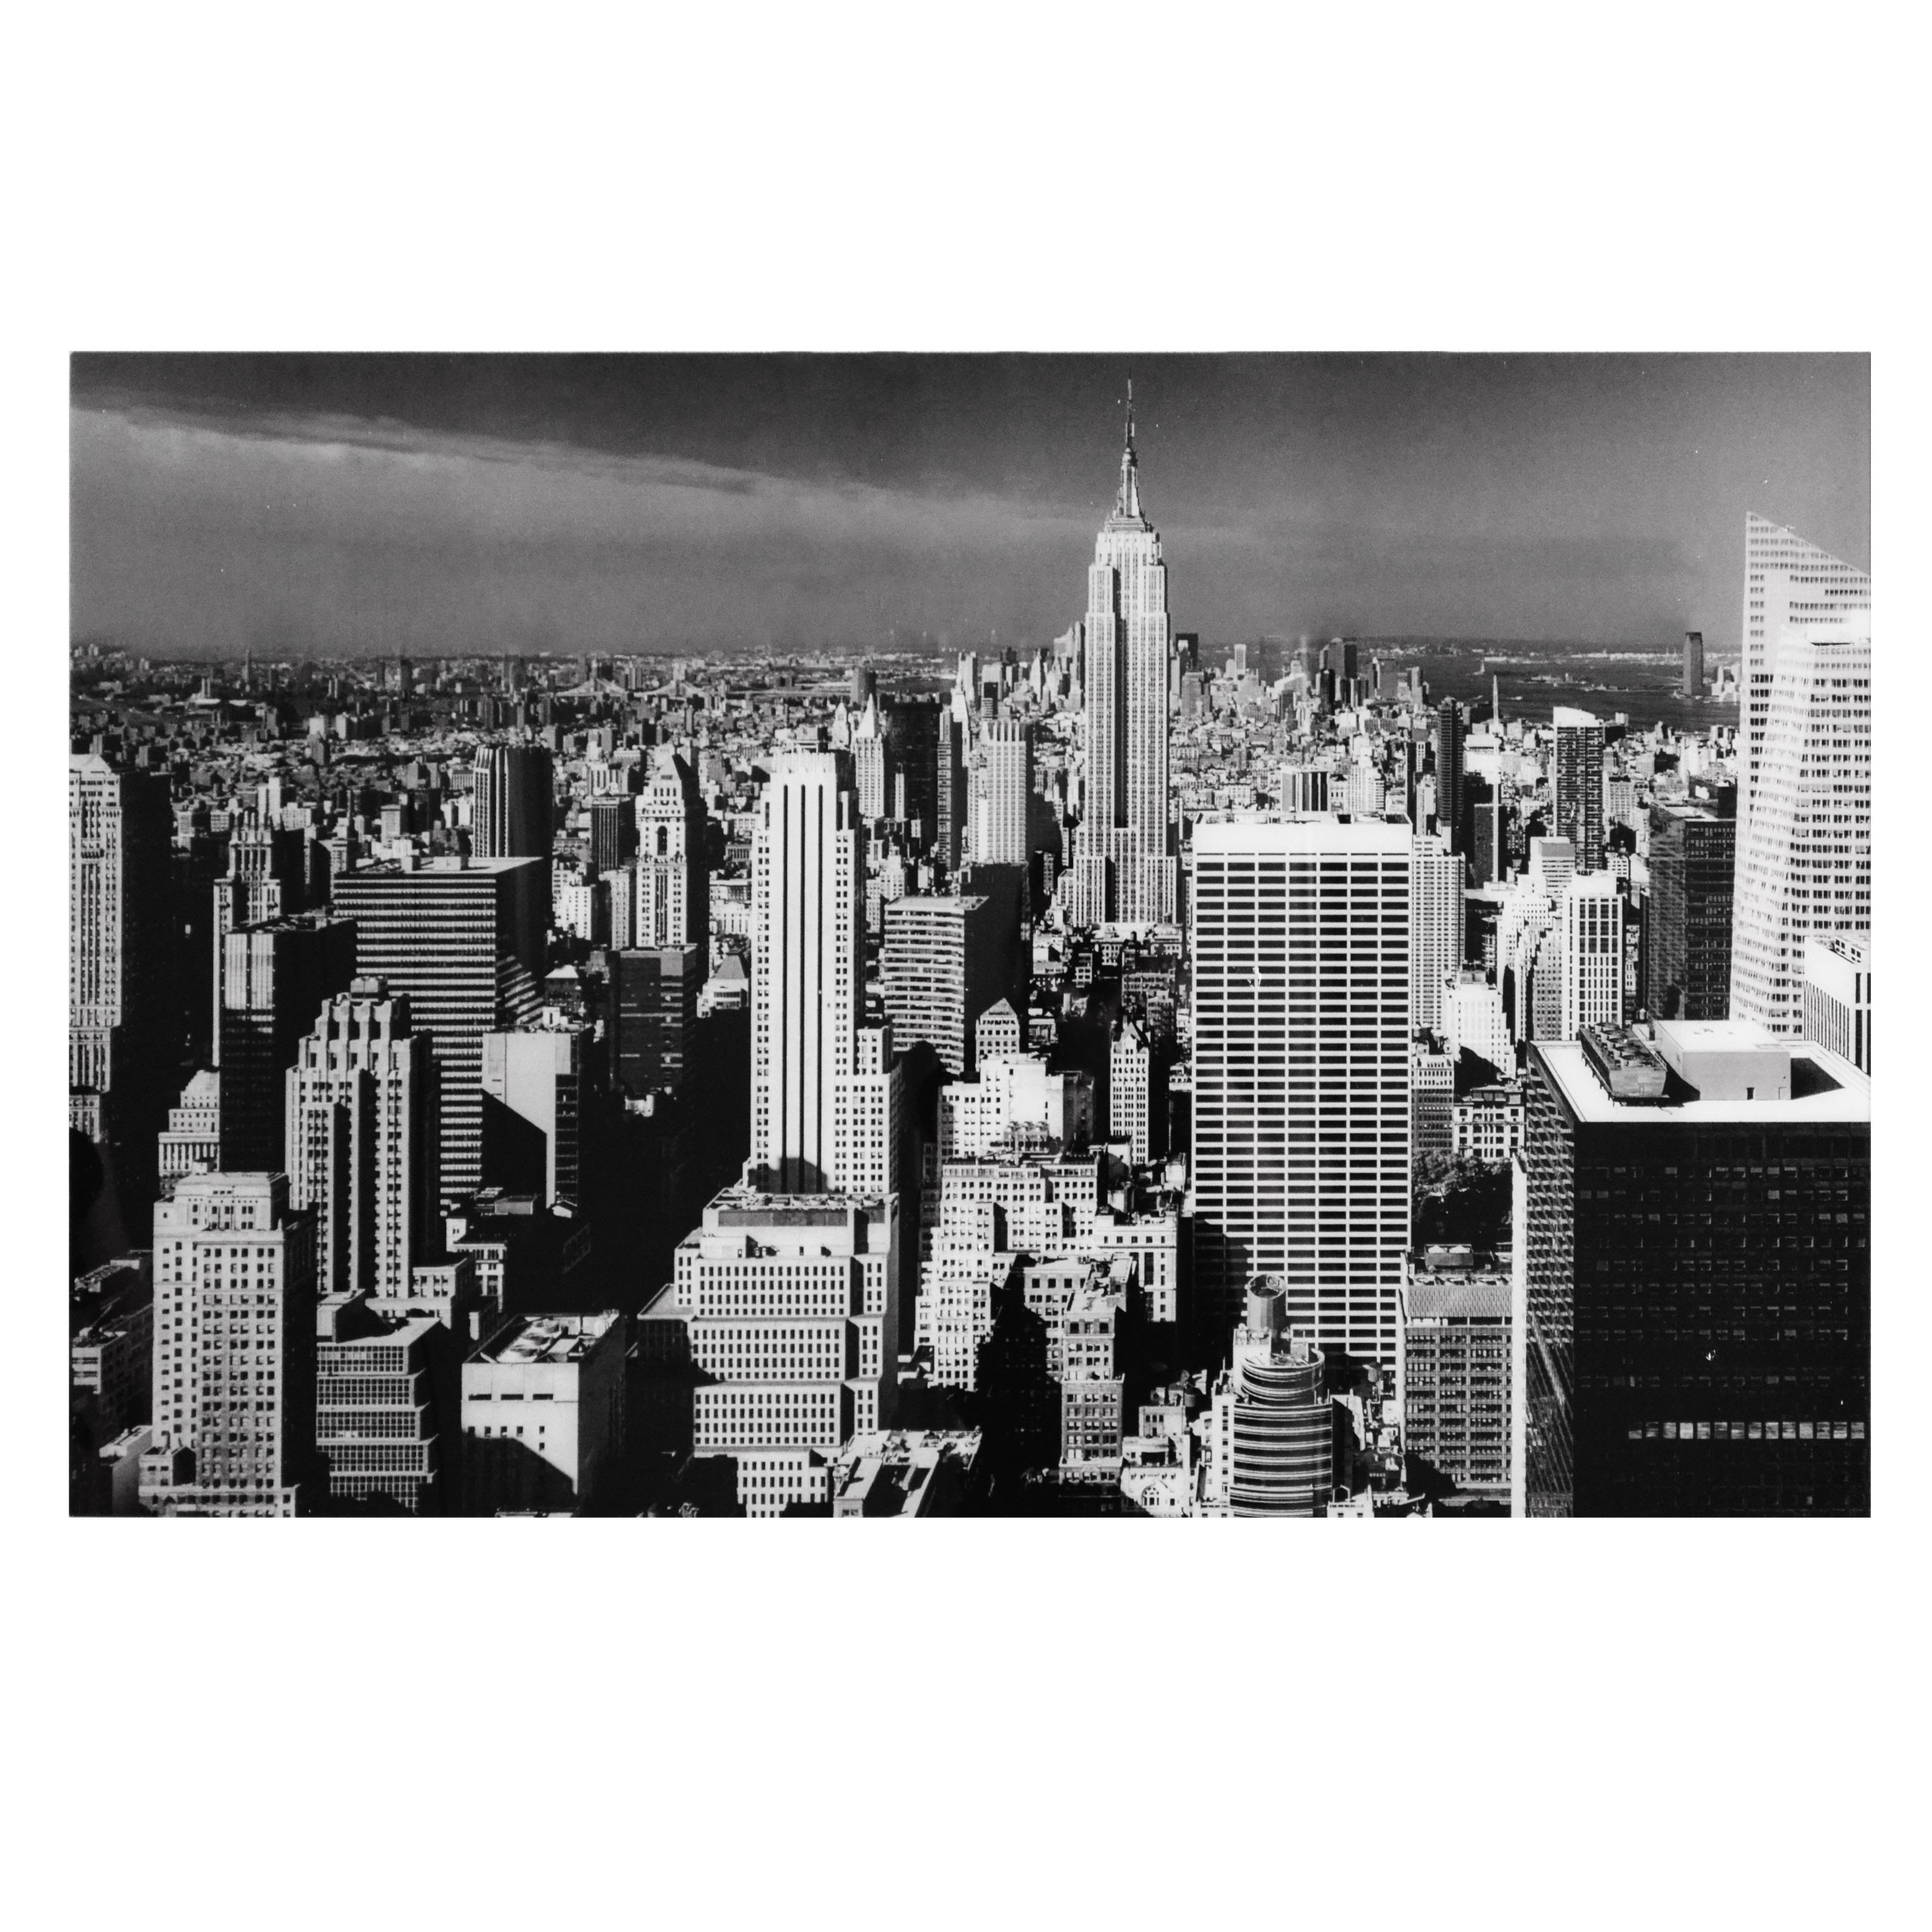 photo de new york en noir et blanc interesting statue york on image noir et blanc de vecteur de. Black Bedroom Furniture Sets. Home Design Ideas